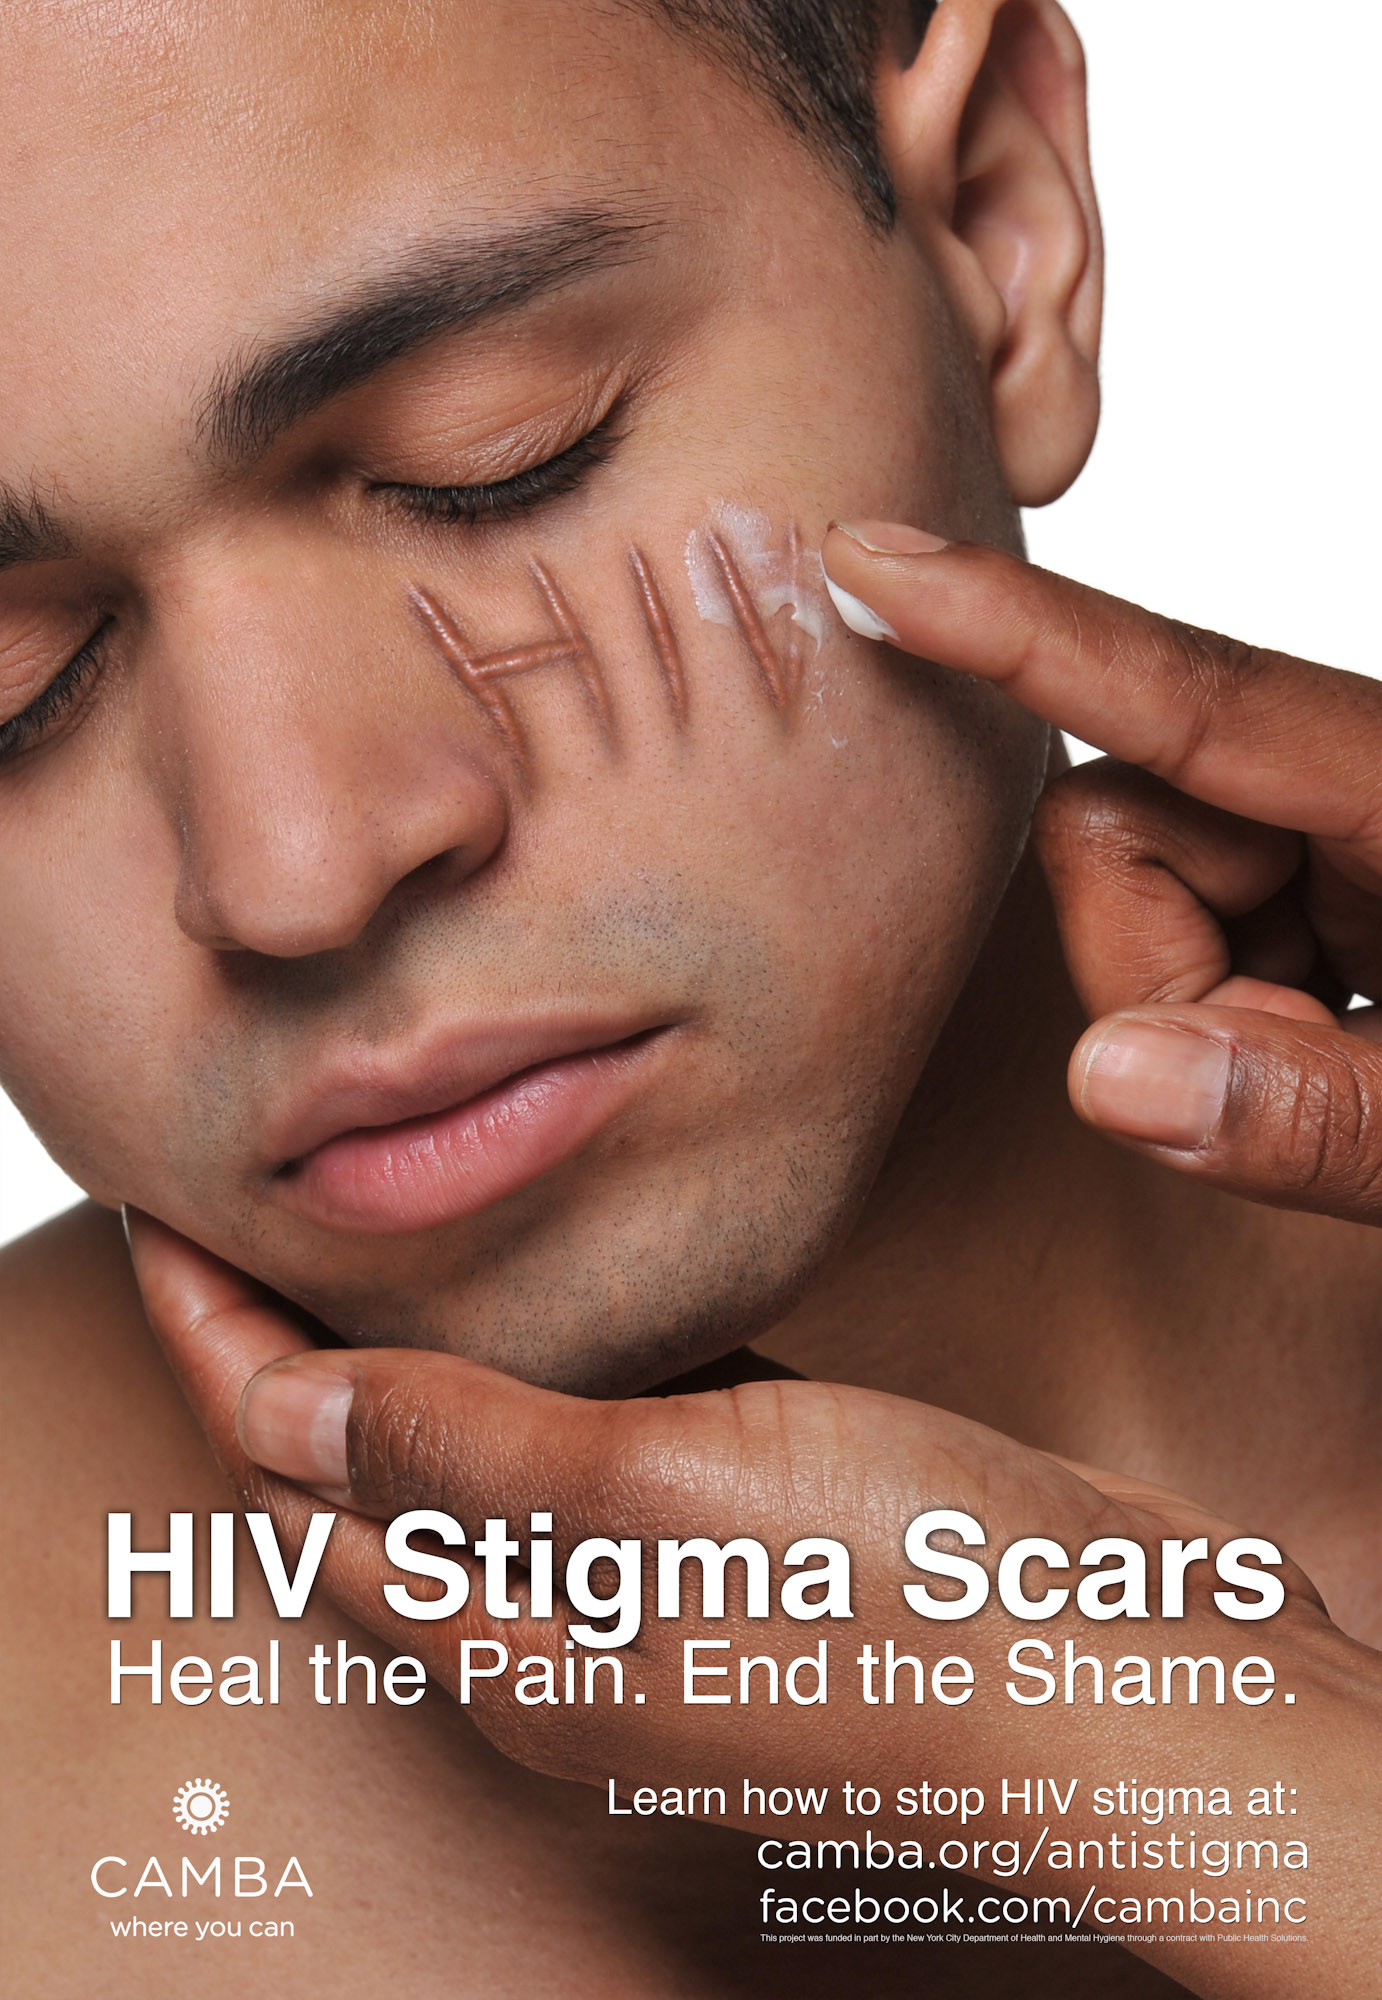 hiv aids and stigma Avert: hiv & aids discrimination and stigma kaiser family foundation: attitudes about stigma and discrimination related to hiv/aids  webmd does not provide medical advice, diagnosis or.